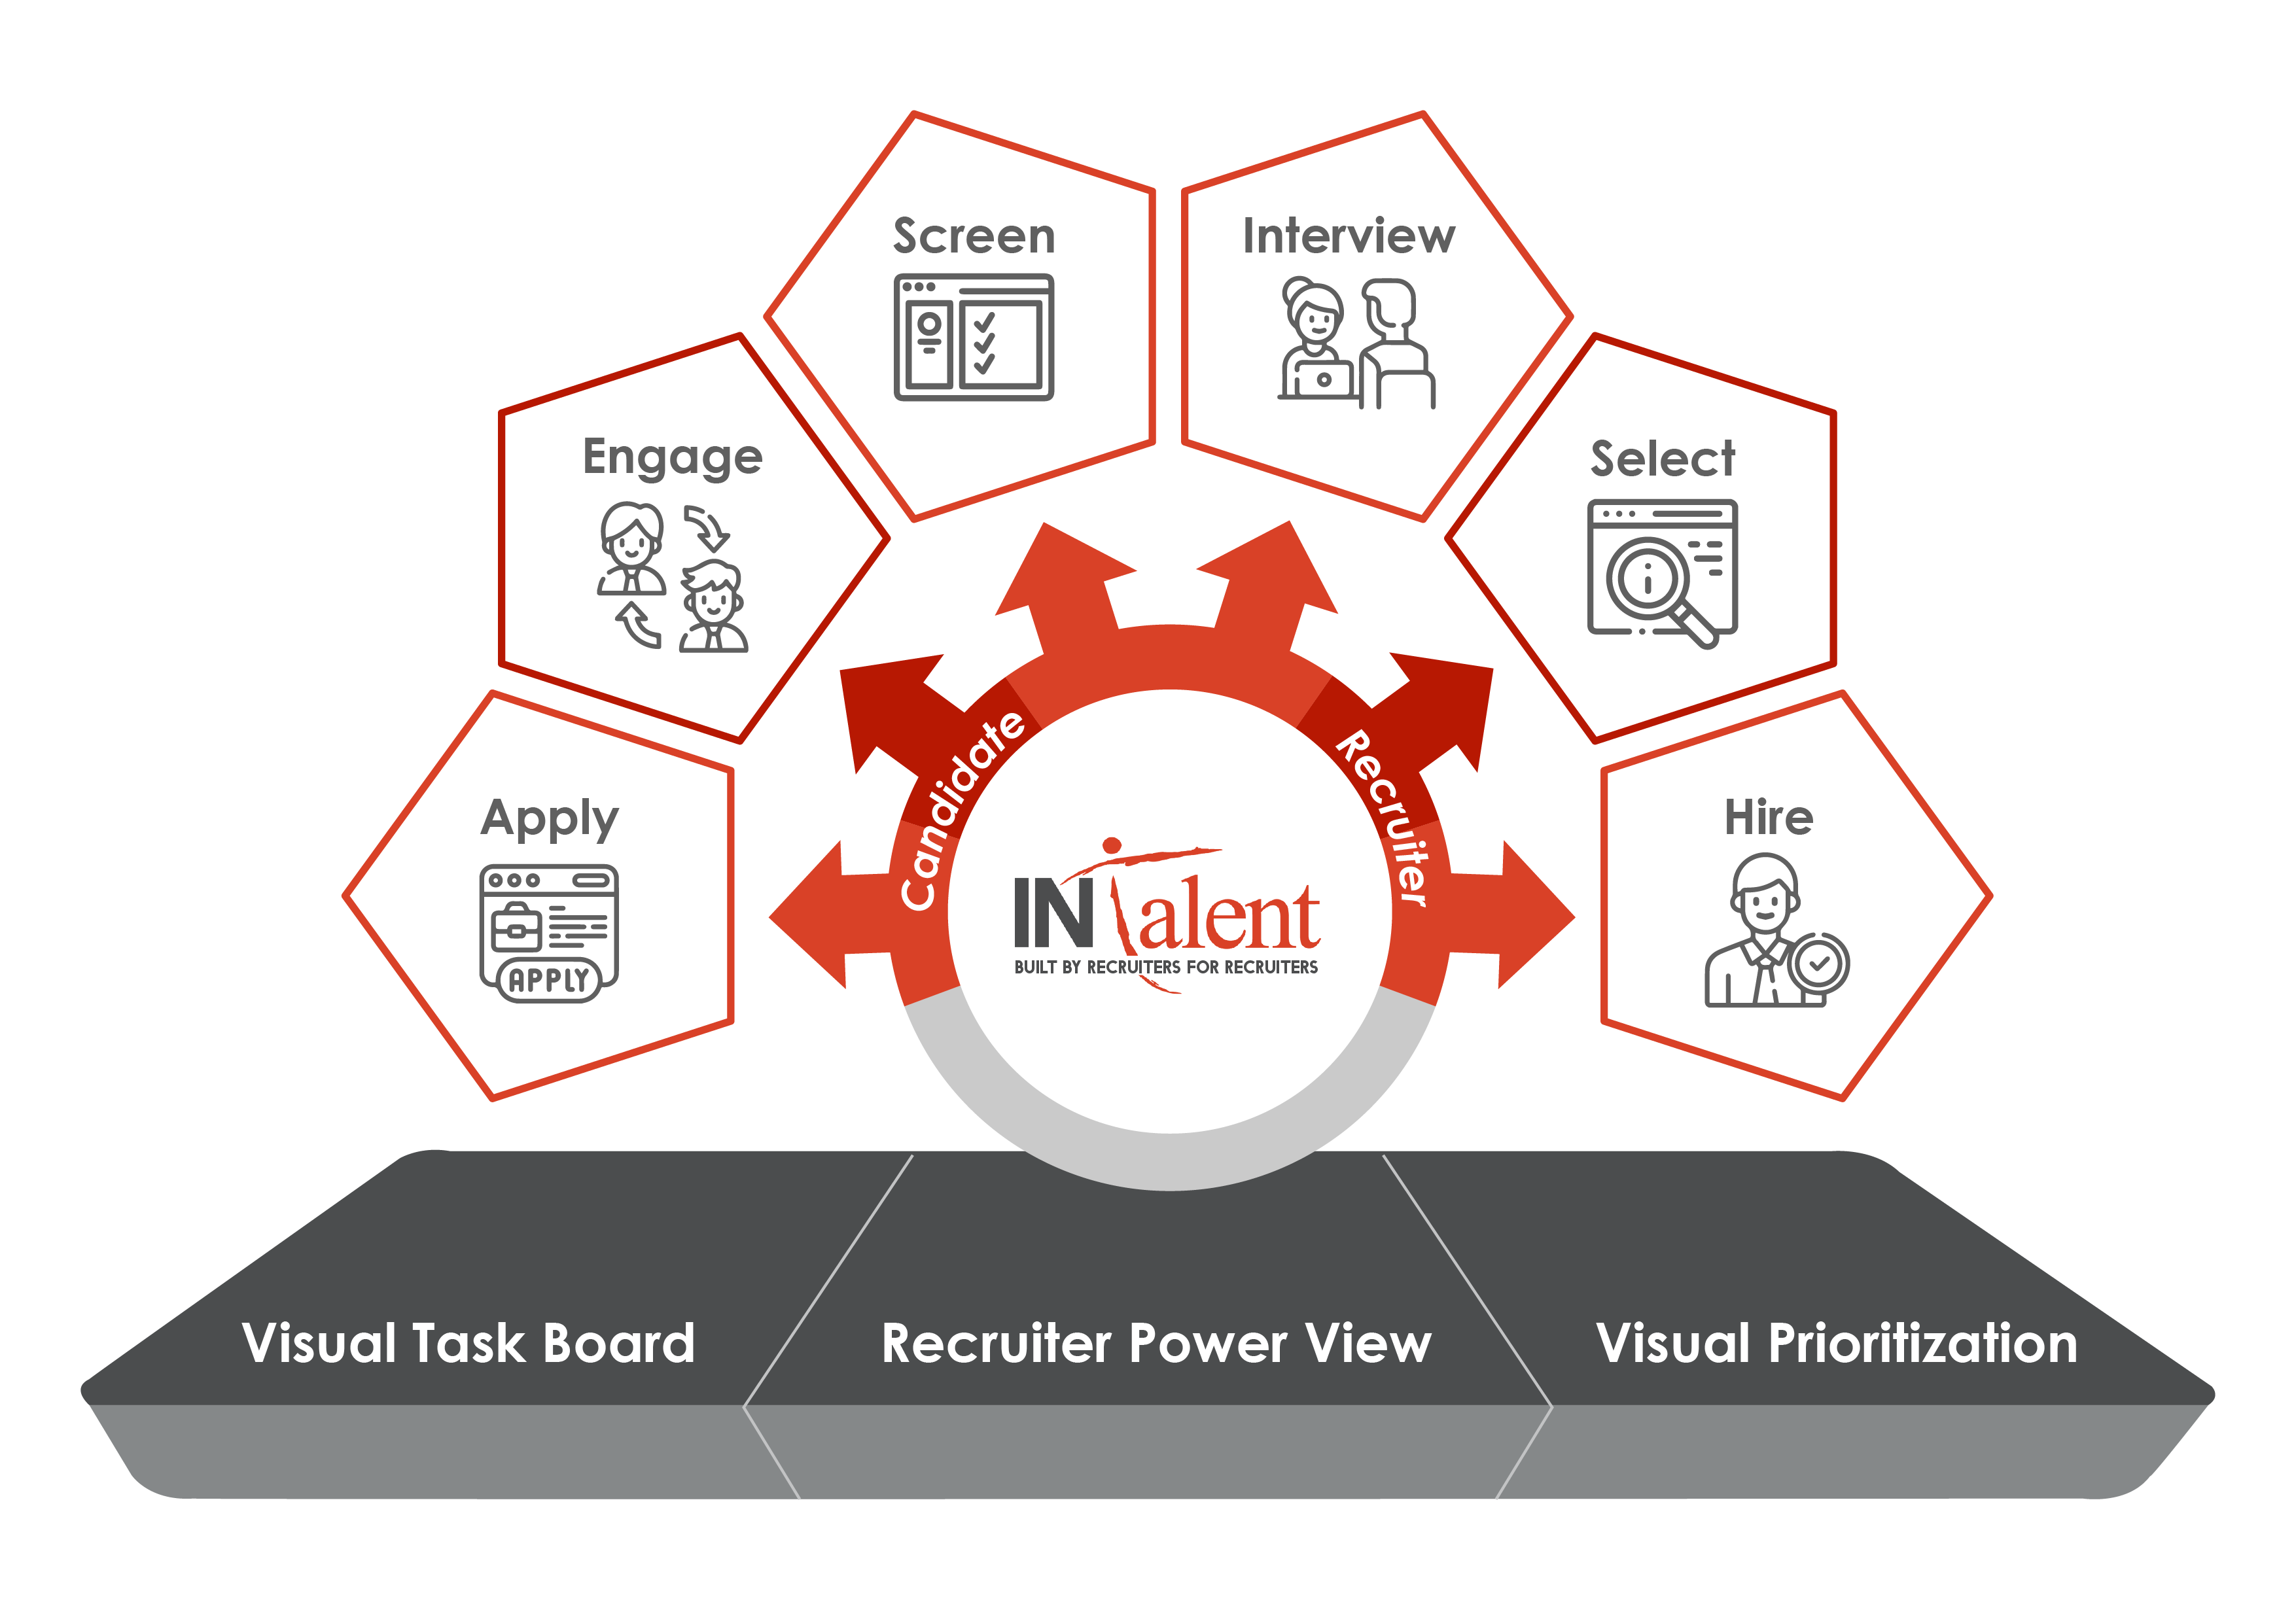 Boost efficiency and make recruitment easier with INTalent - Applicant Tracking System on ServiceNow